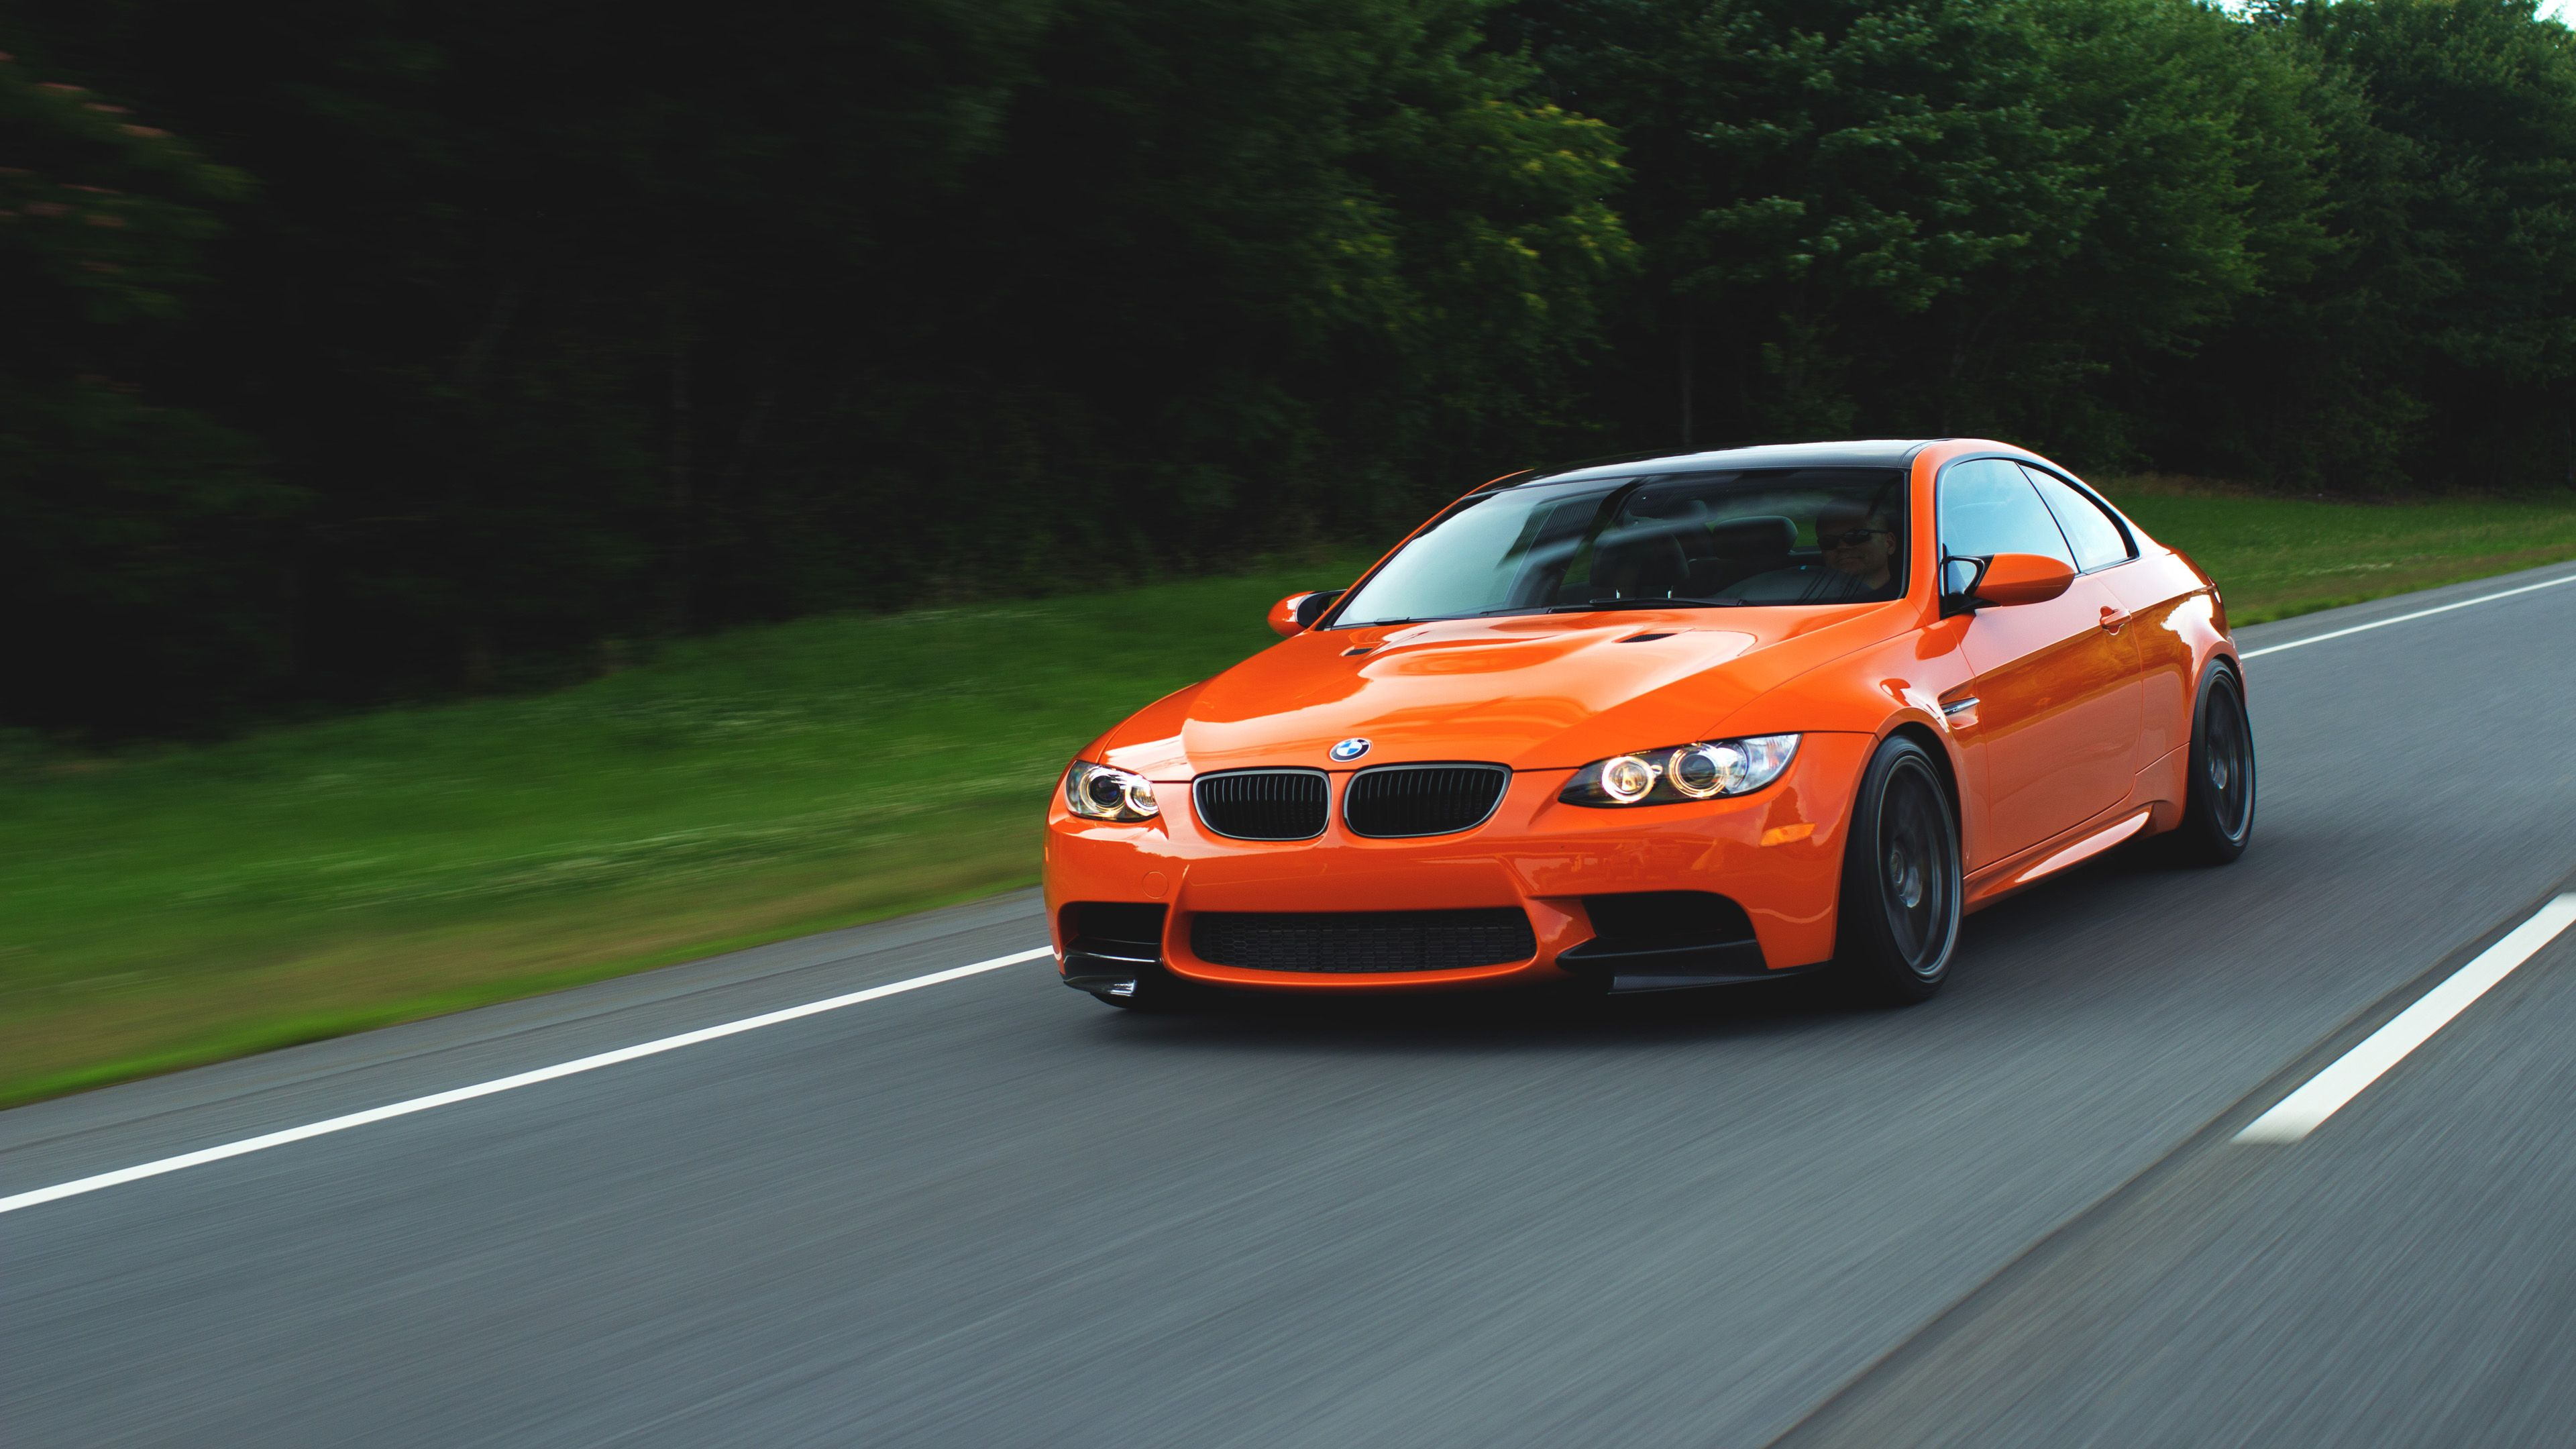 Bmw M3 Ultra Hd 4k Wallpapers Bmw Bmw M3 Car Wallpapers